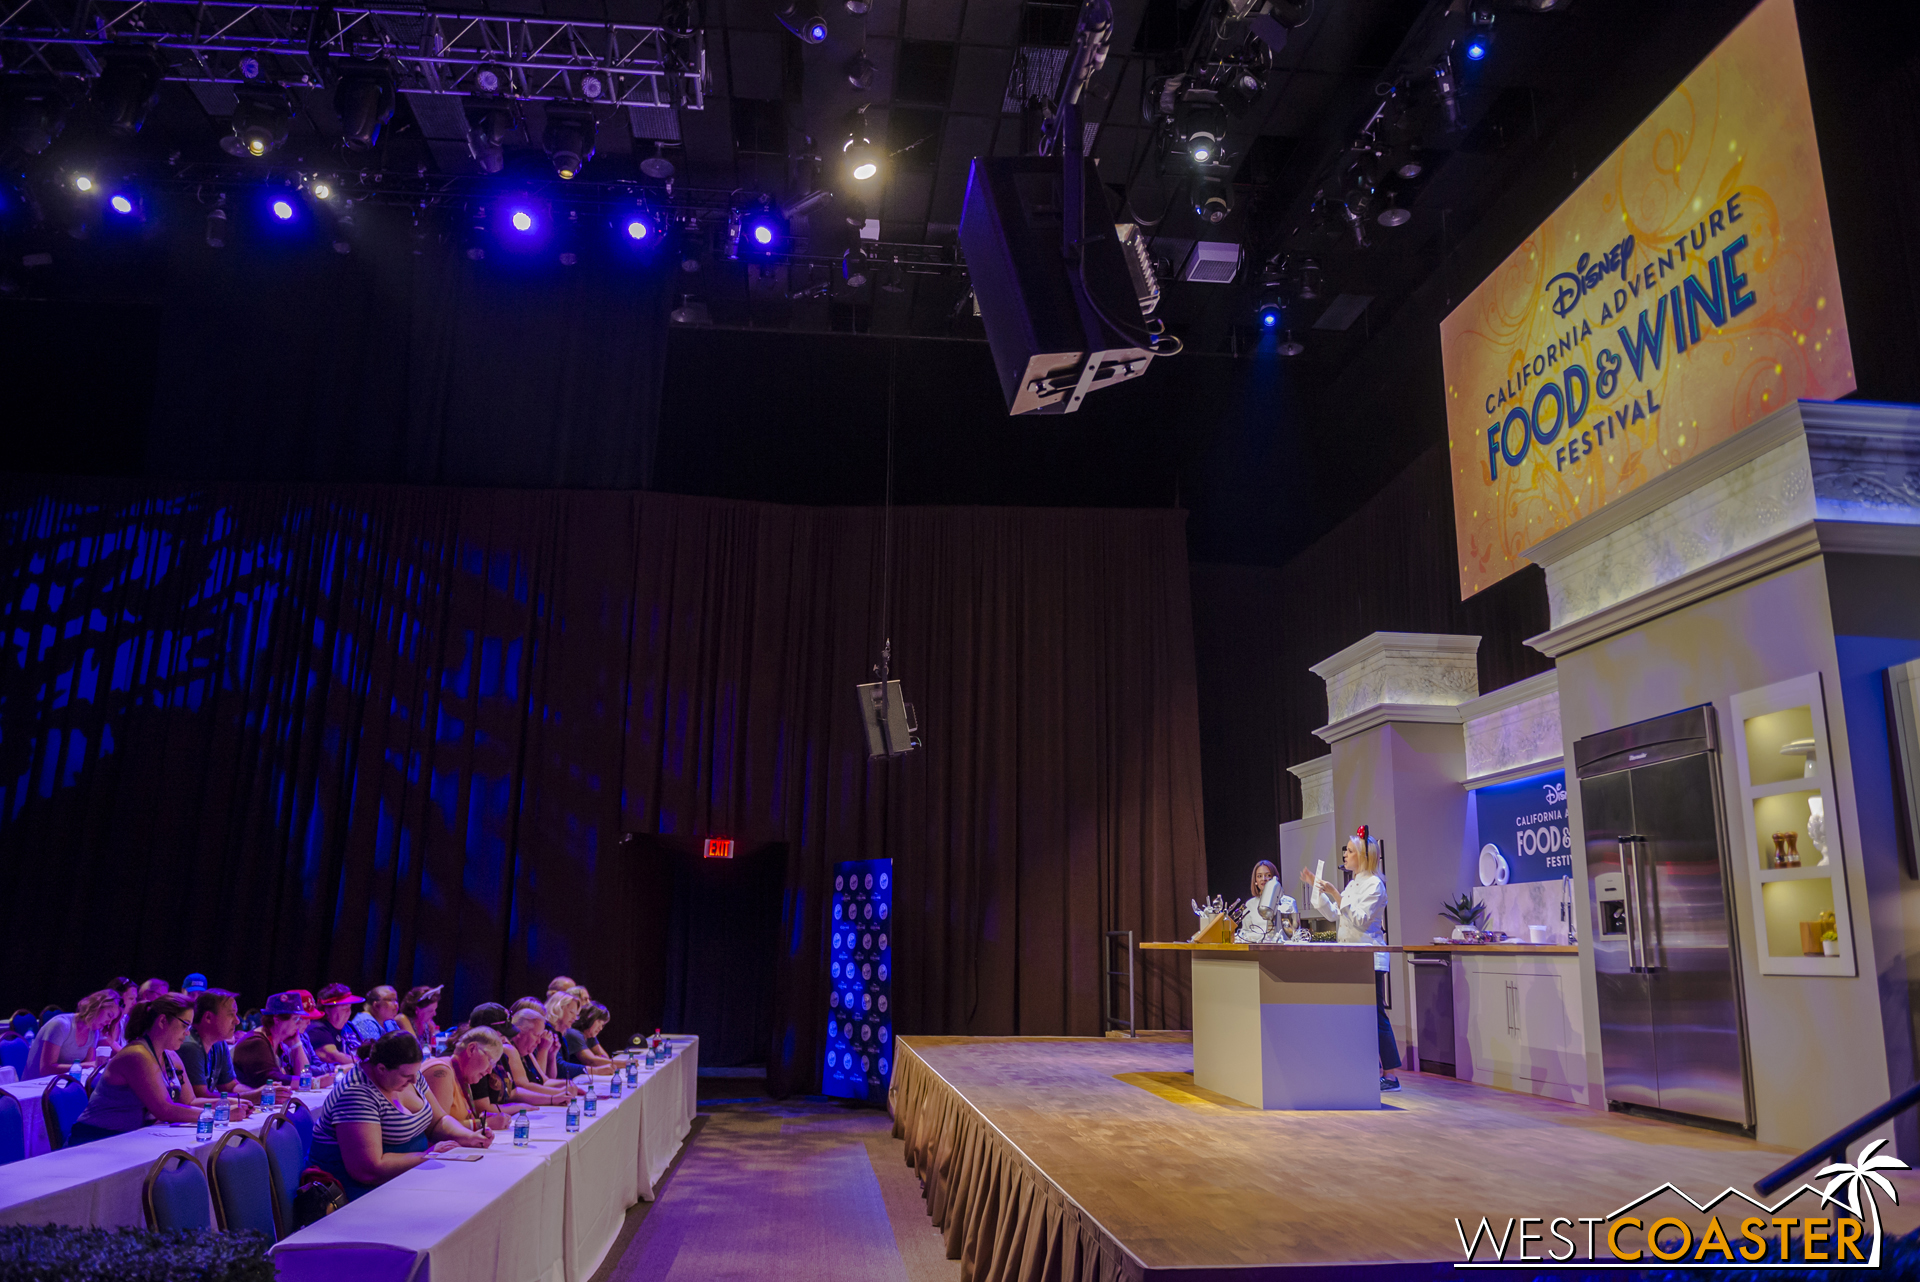 Culinary demonstrations were also taking place inside Stage 17 at the Festival Showplace.